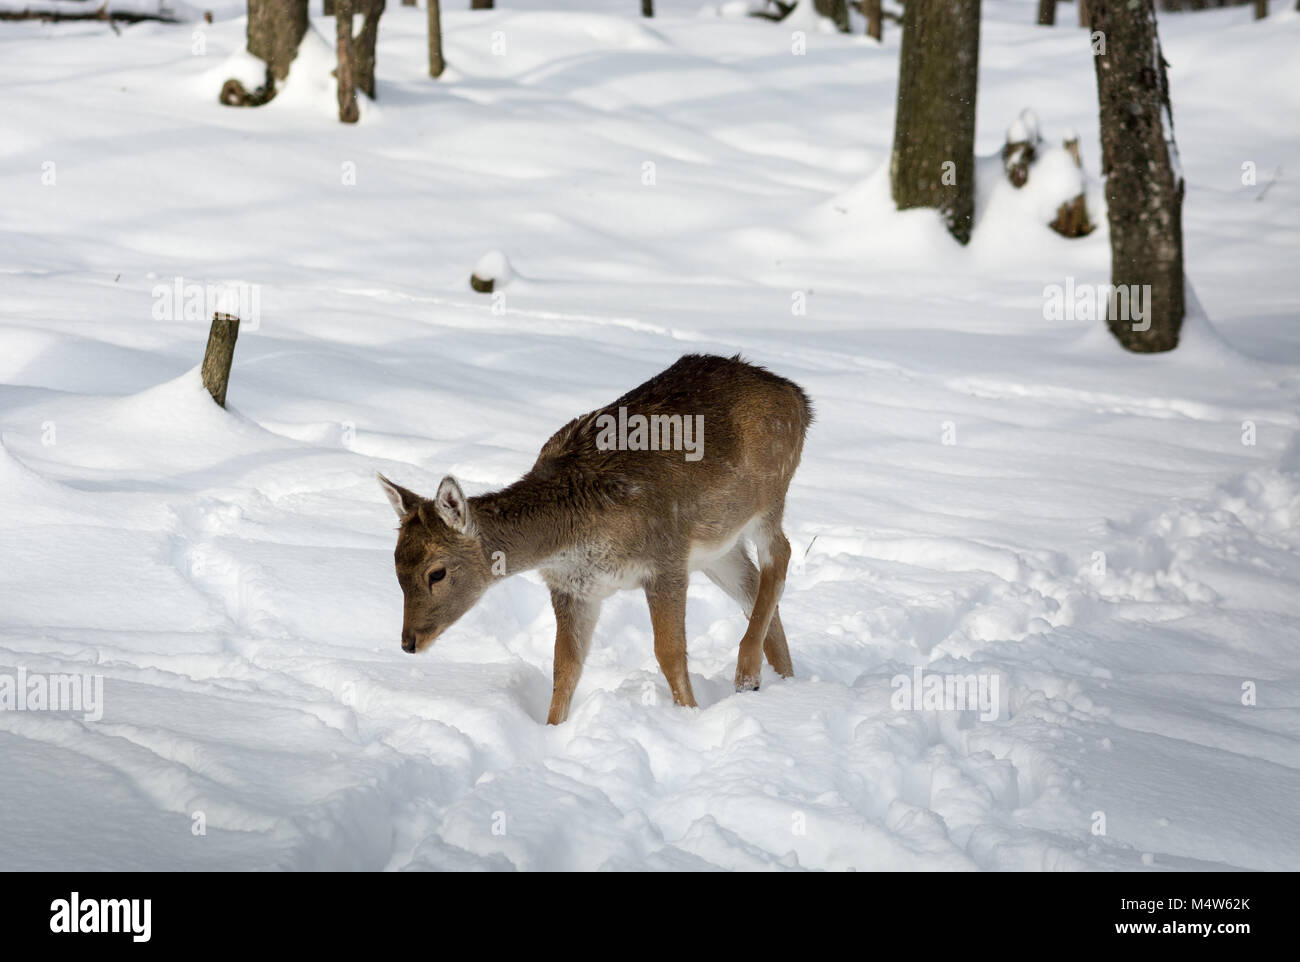 Very Young Fallow Deer Walking in the Snow on a Snowy Sunny Day. - Stock Image